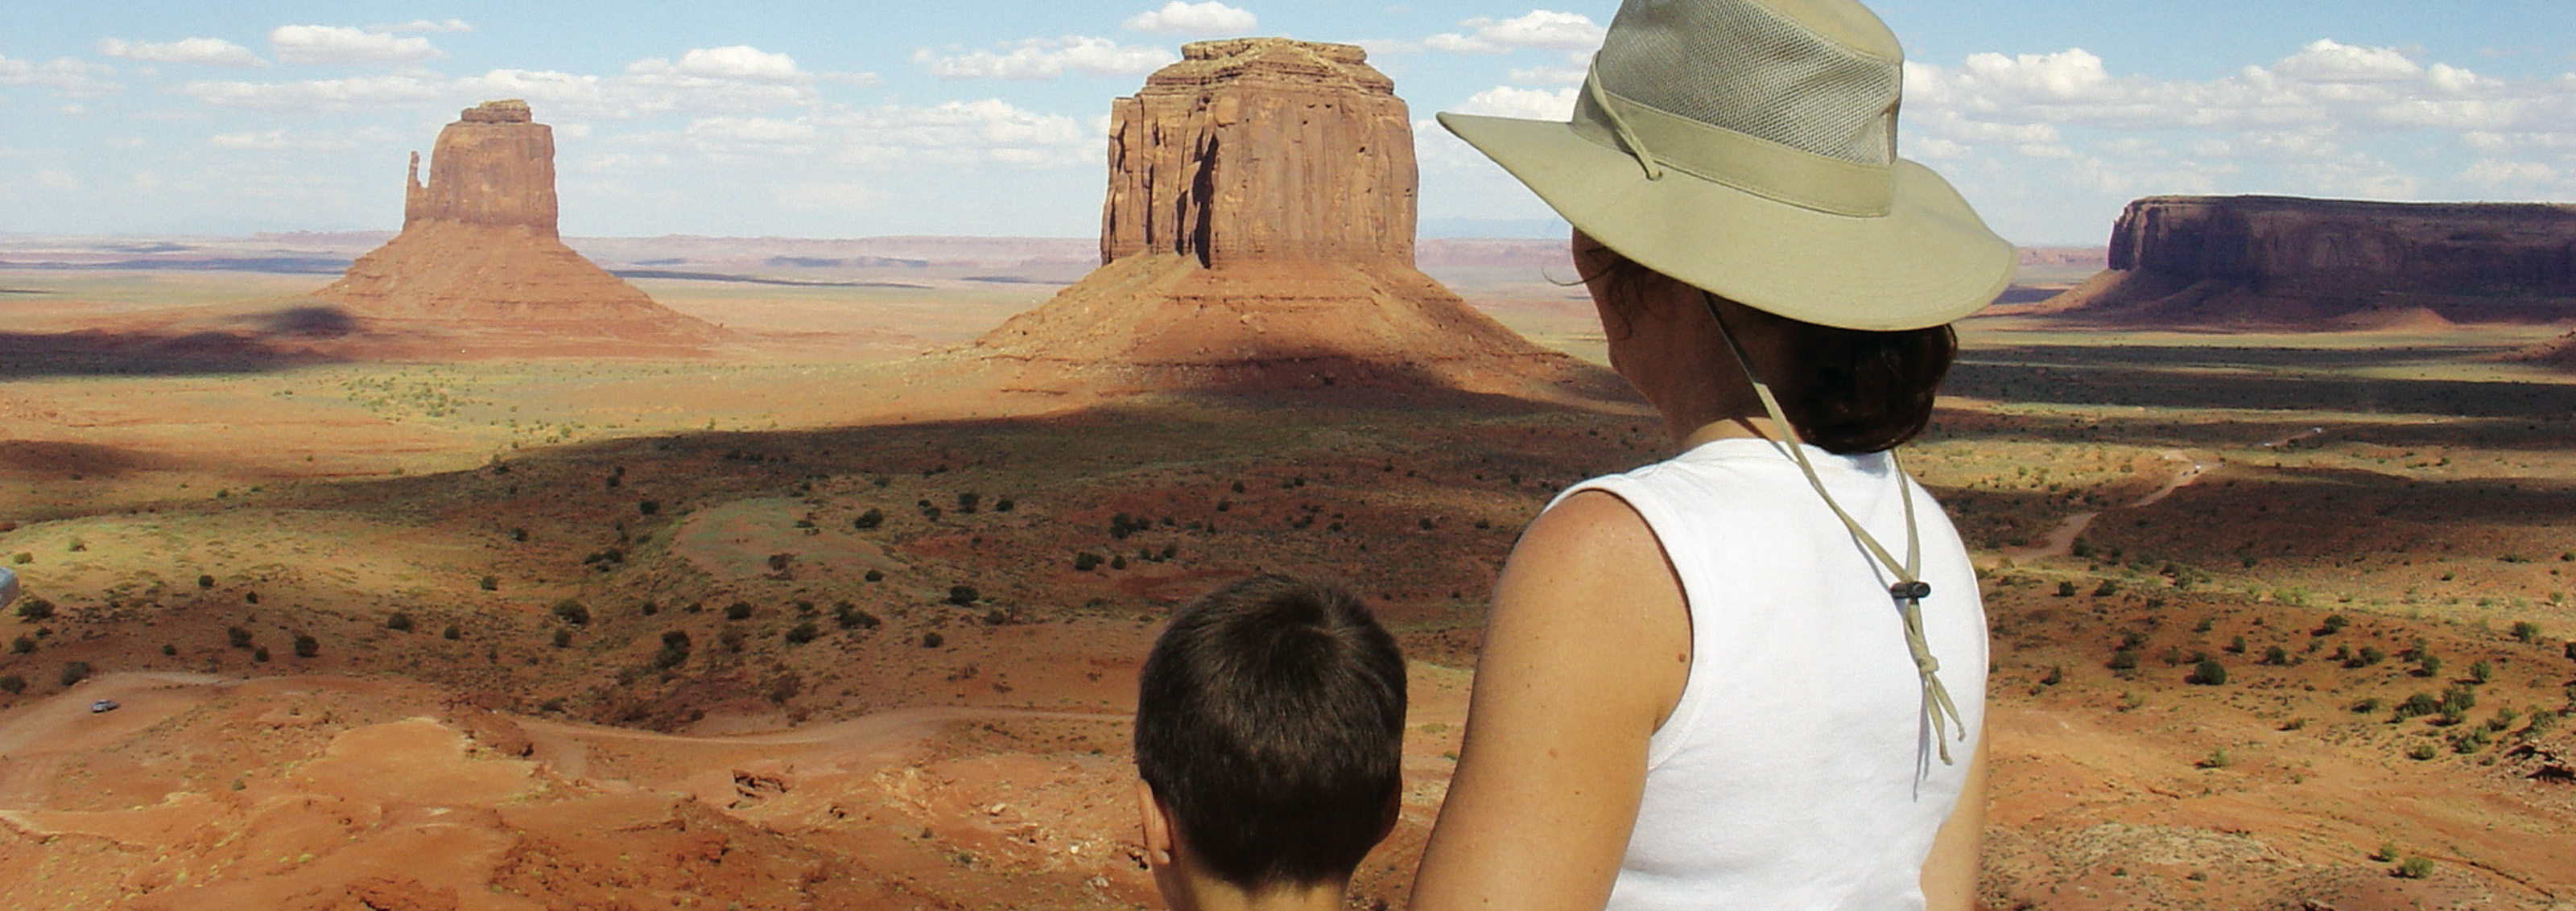 Western Adventure Family Holiday